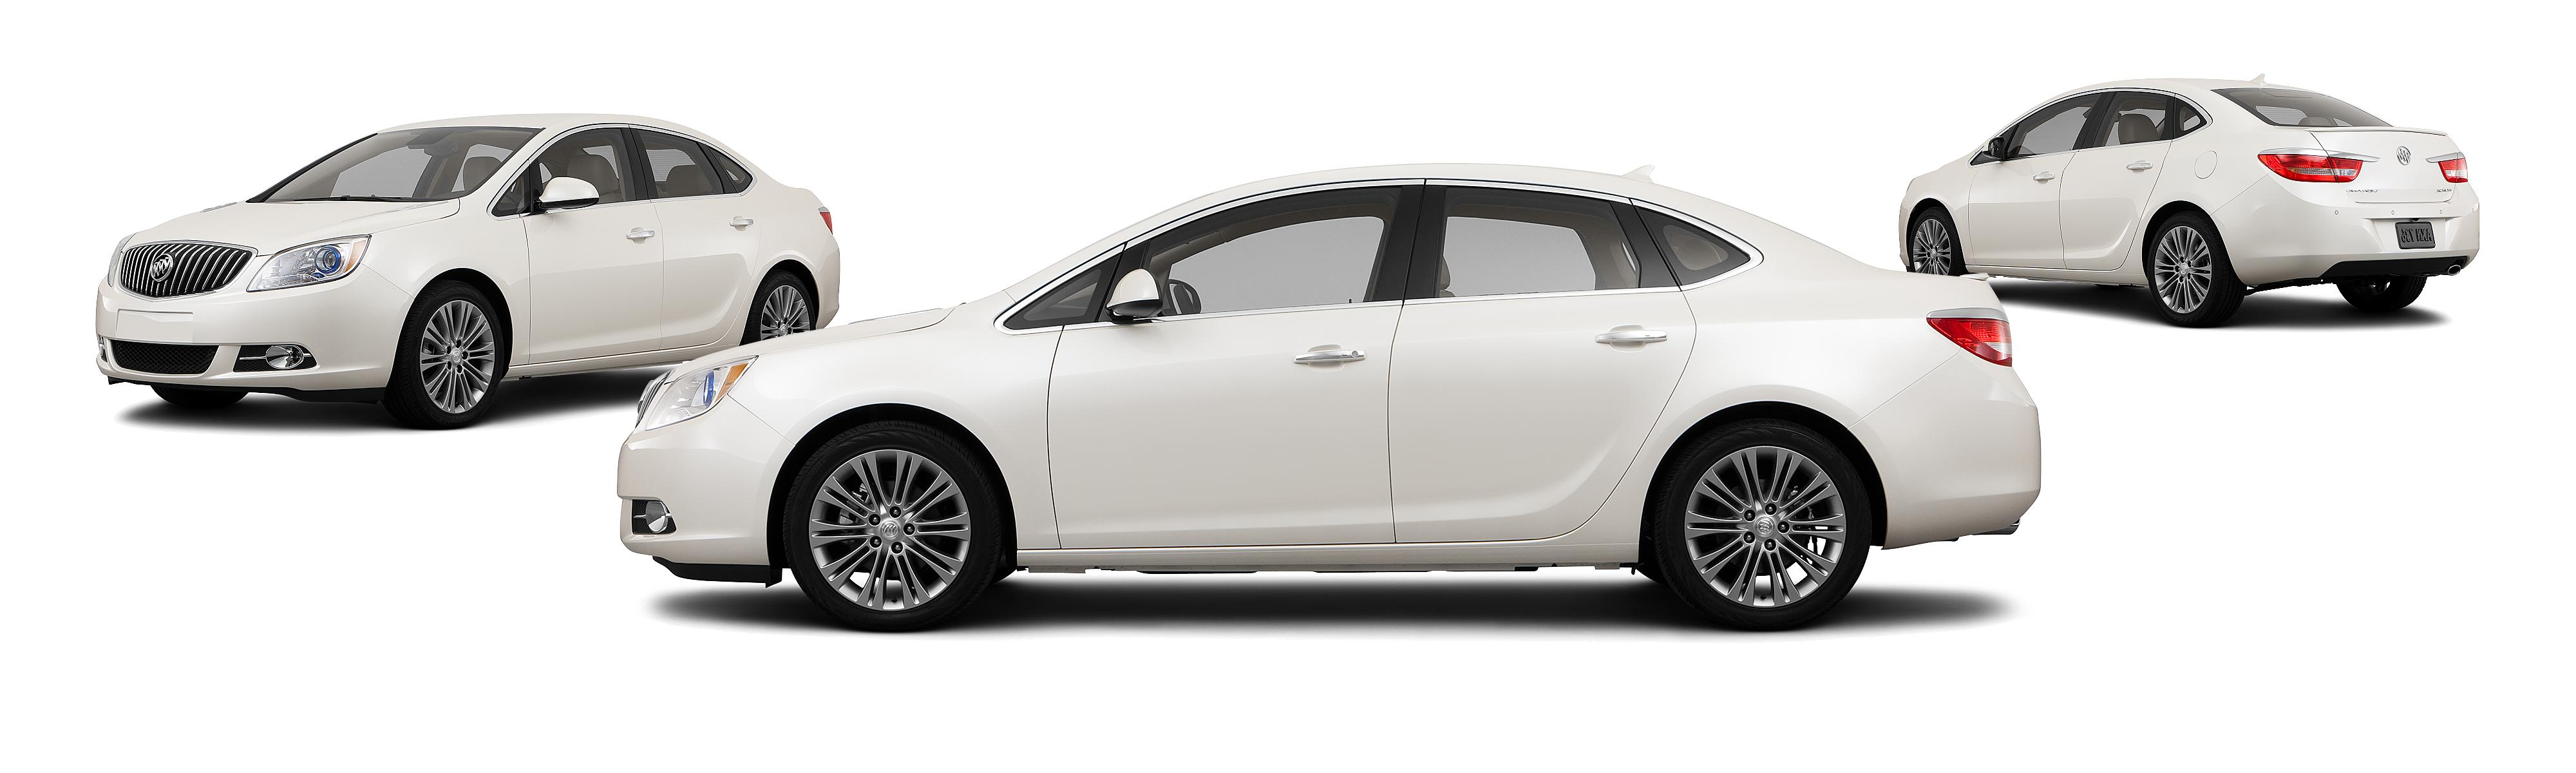 2013 Buick Verano Leather Group 4dr Sedan Research GrooveCar